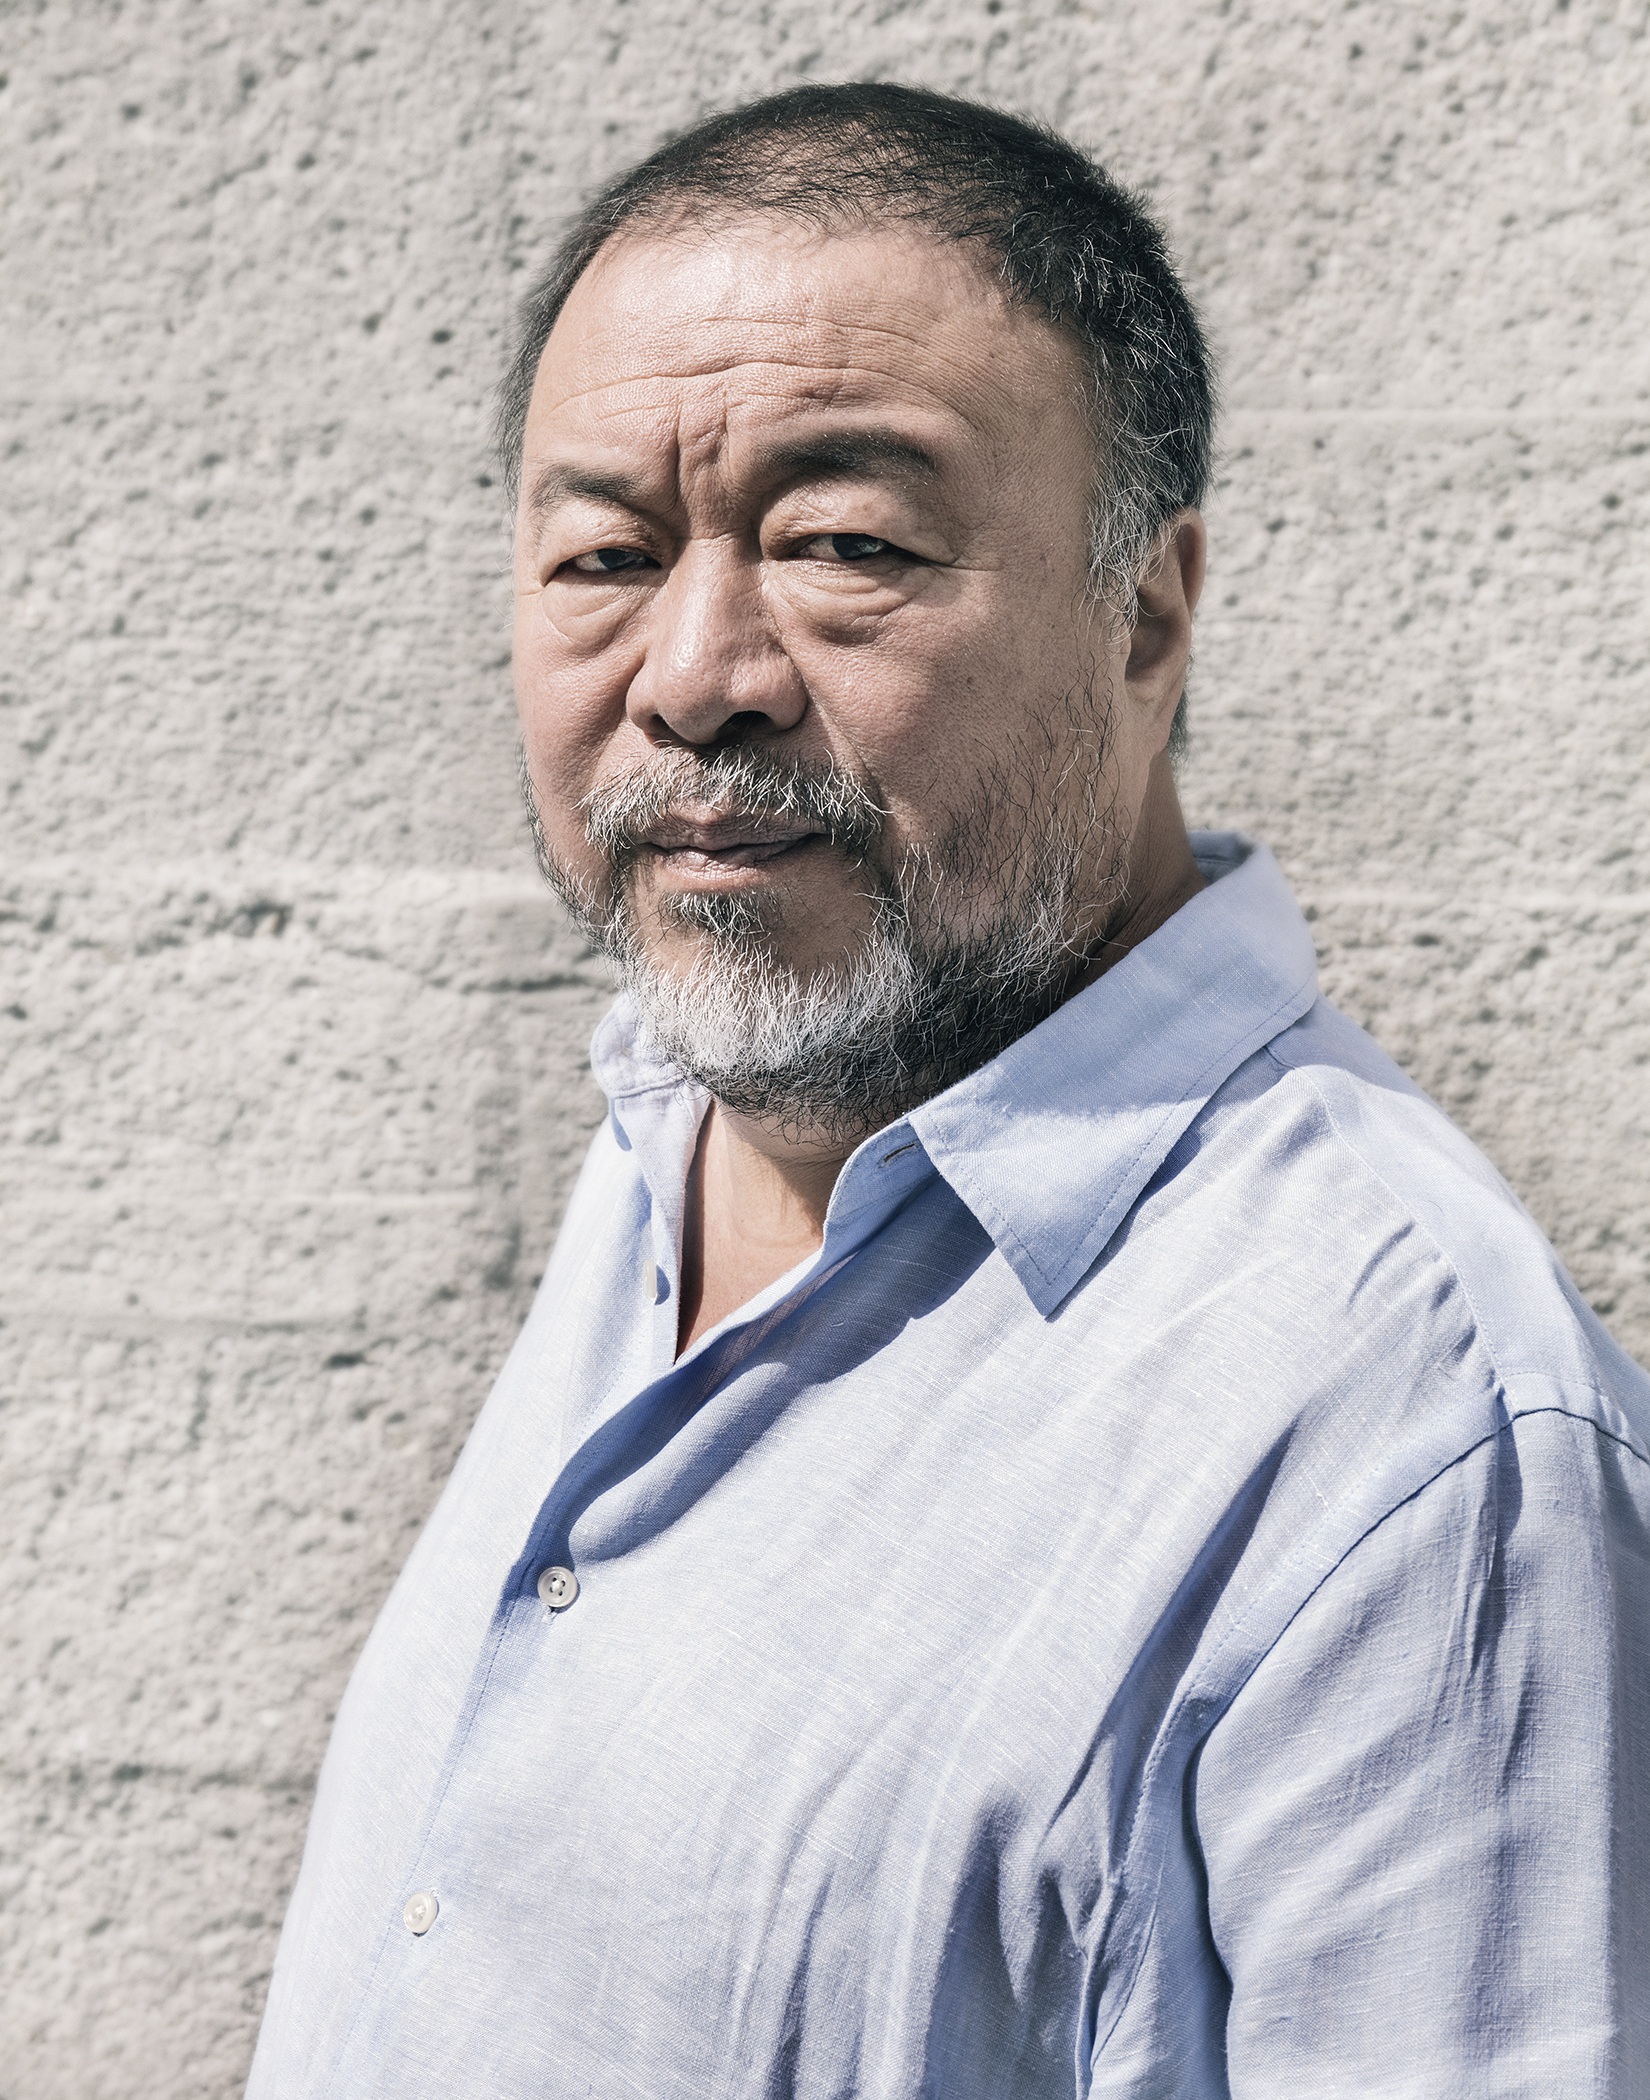 """Ai Weiwei - """"When you talk about 'America First', then I think of who comes second, third and the rest. Inevitably, America's future relates to the world's future. It will continuously have a strong impact.""""MonocleUTA Artist Space (Los Angeles)"""